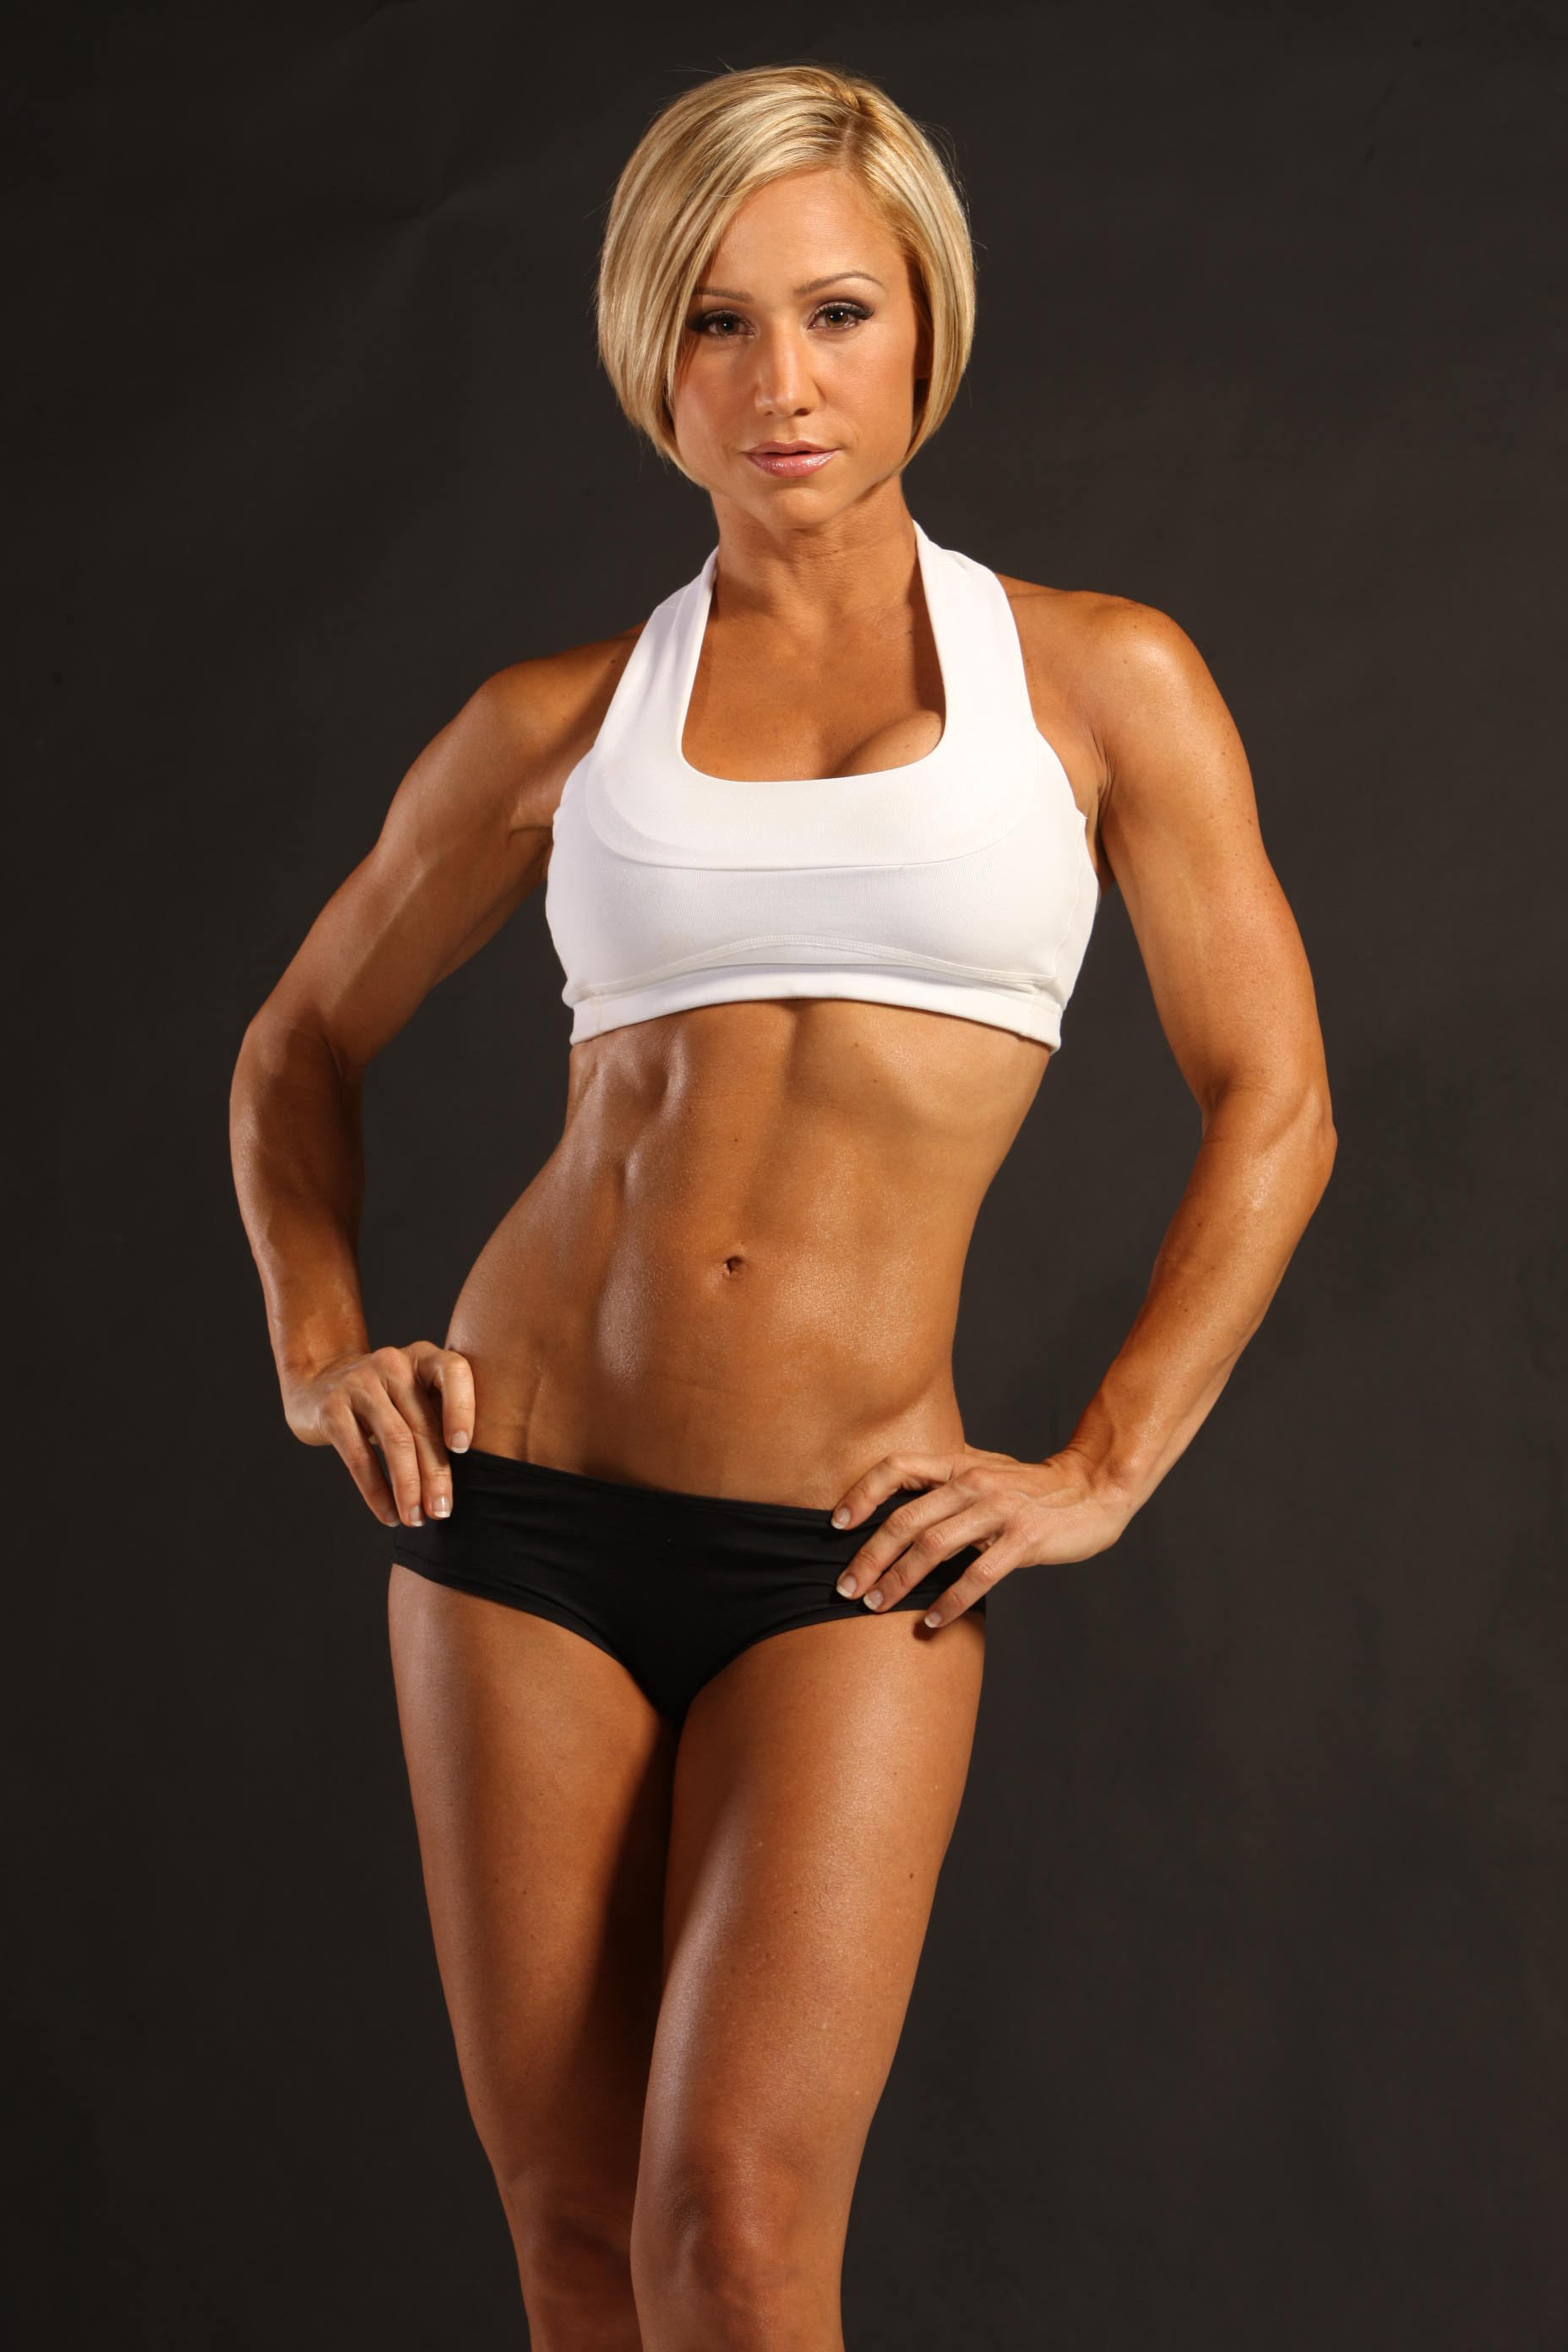 Top 10 Most Successful And Accomplished Female Fitness